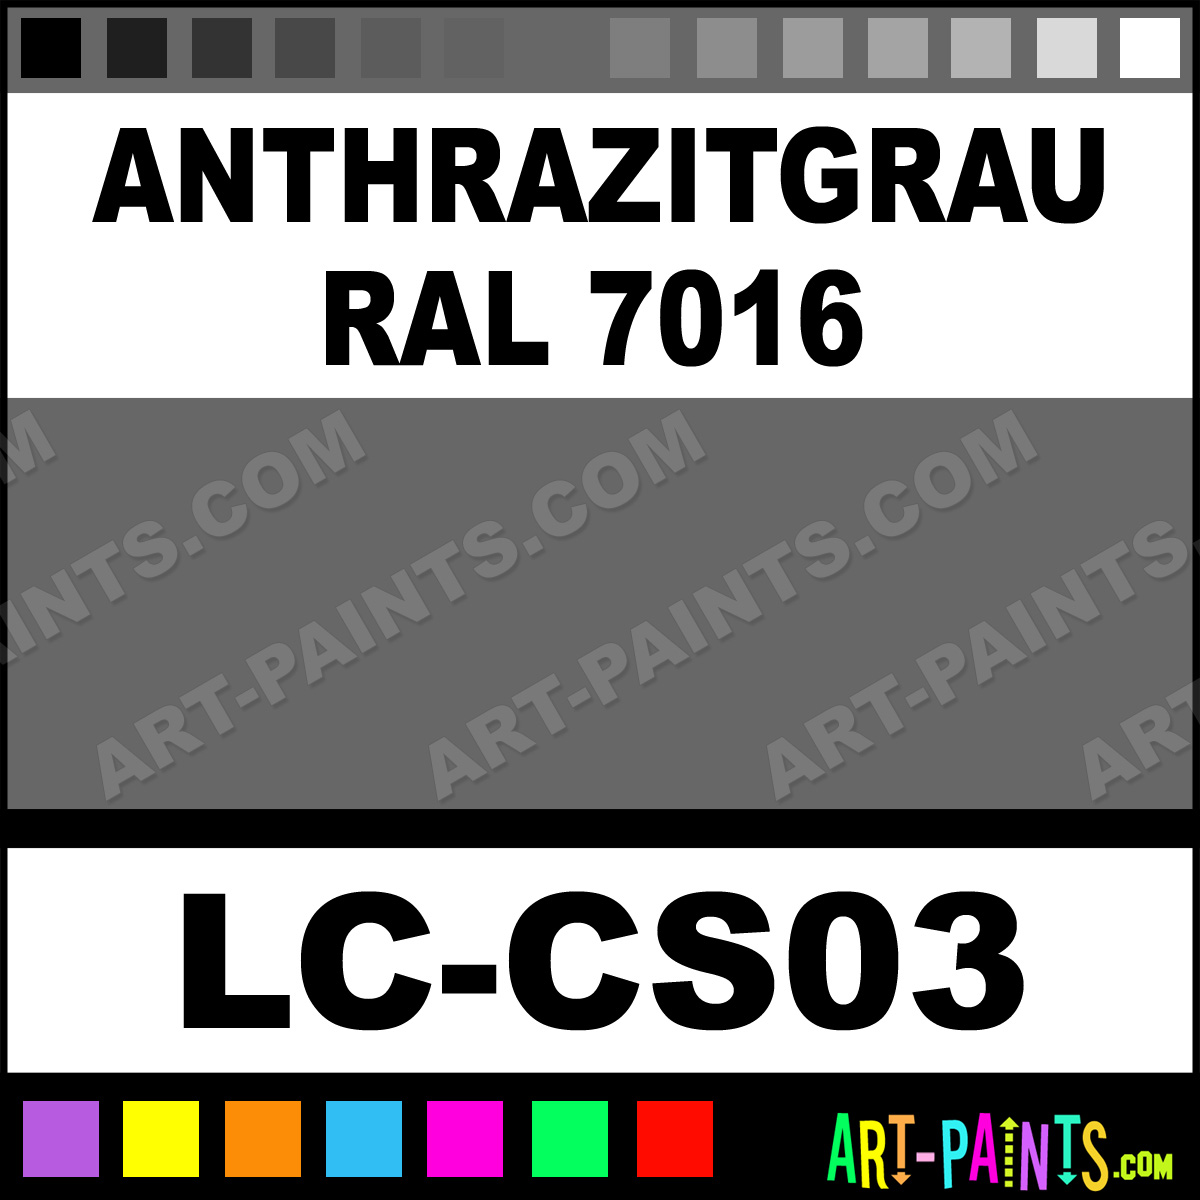 anthrazitgrau ral 7016 german tanks wwii 6 airbrush spray. Black Bedroom Furniture Sets. Home Design Ideas